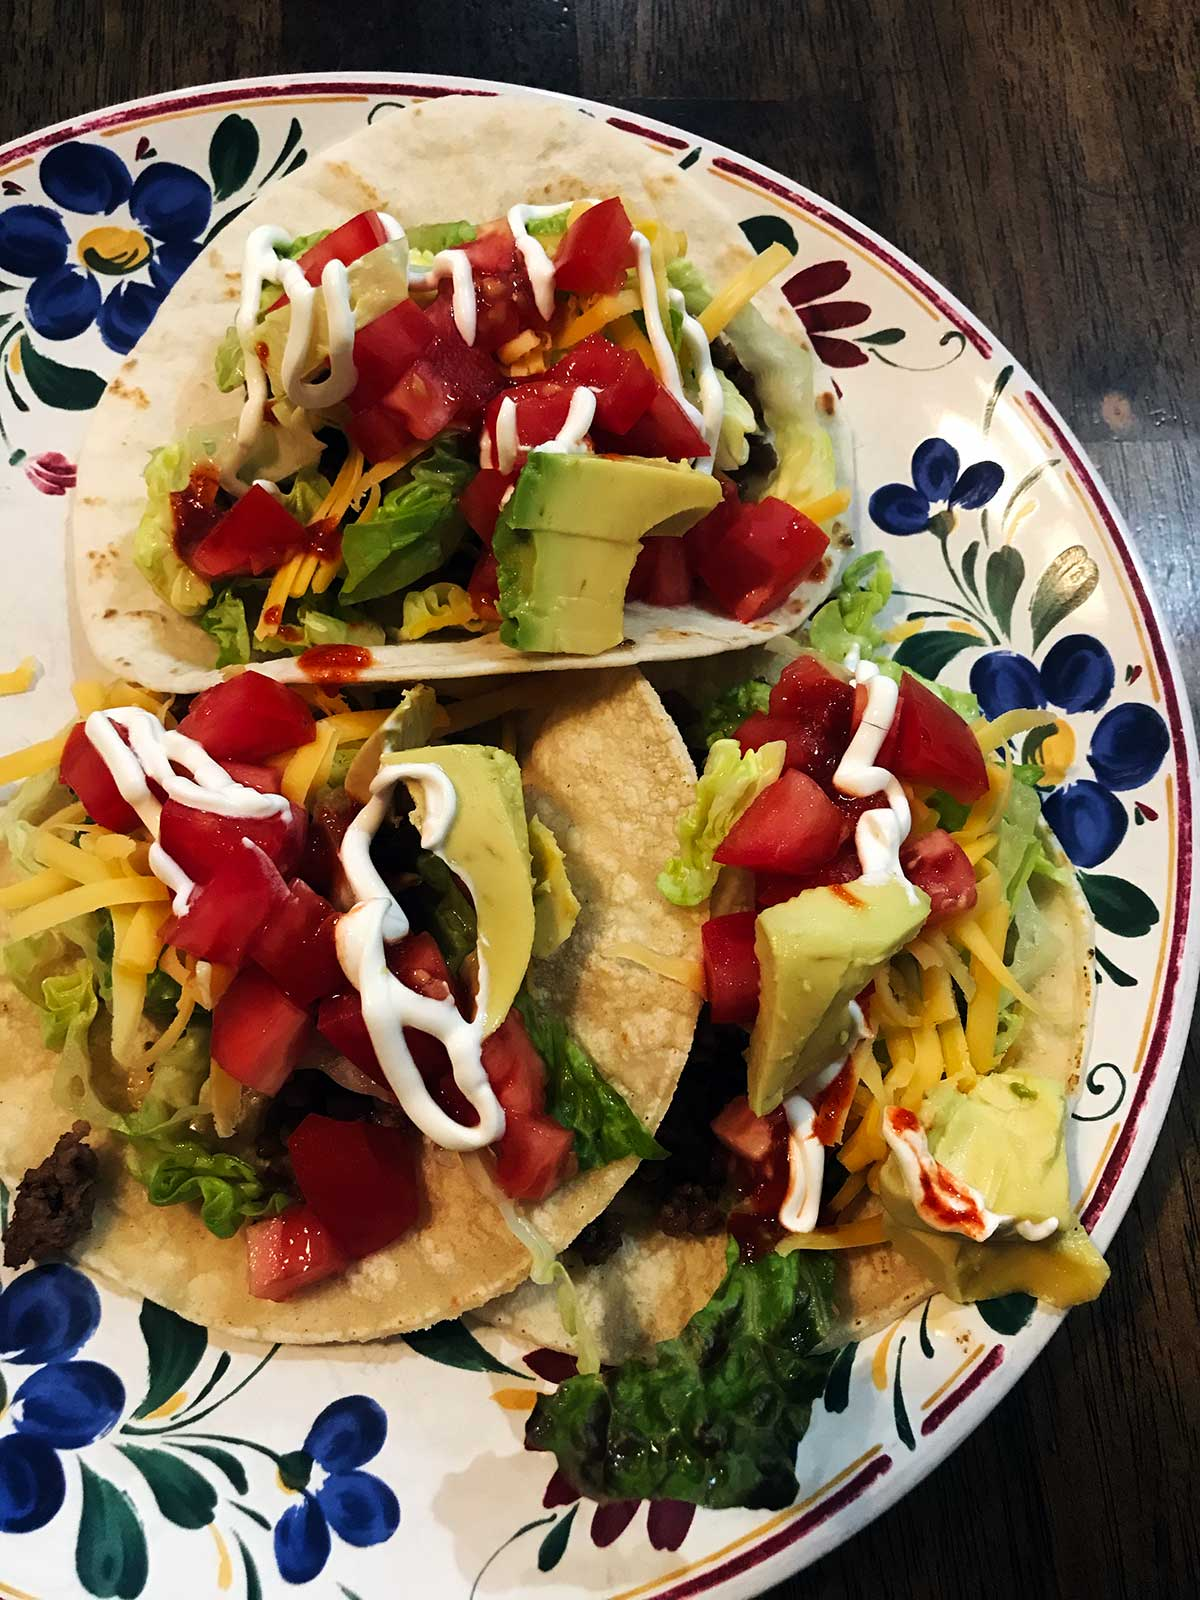 tacos on plate with sour cream